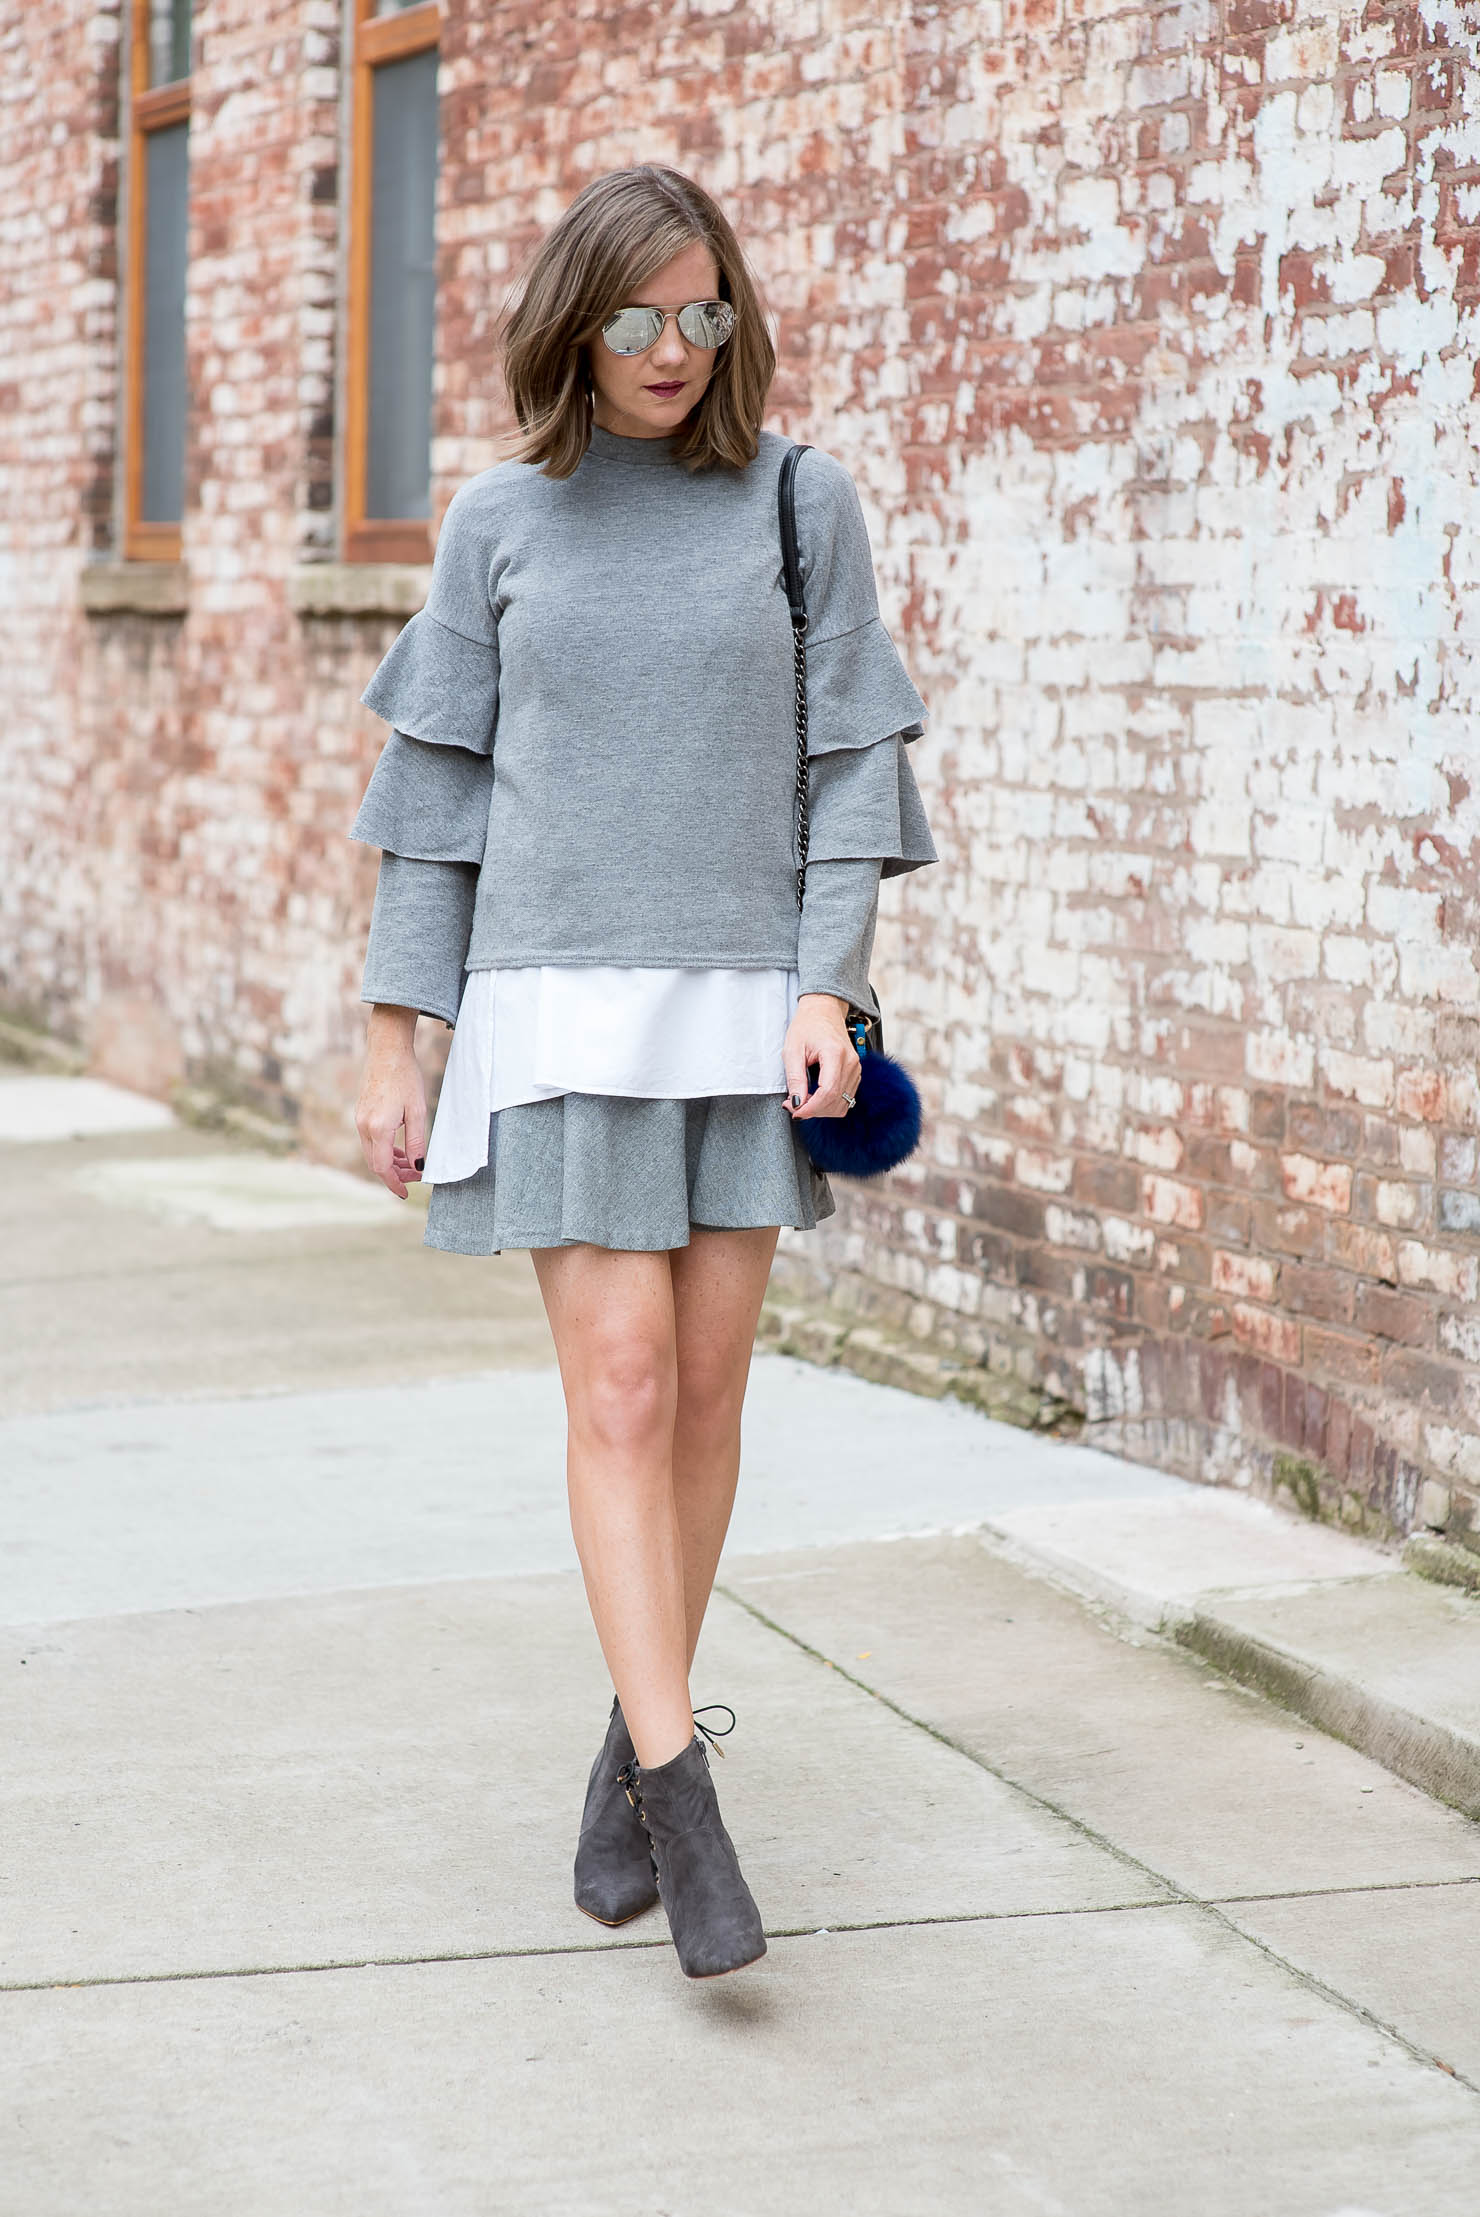 structured-grey-ruffled-outfit-grey-layered-look-monochromatic-style-shein-ruffle-sleeve-sweater